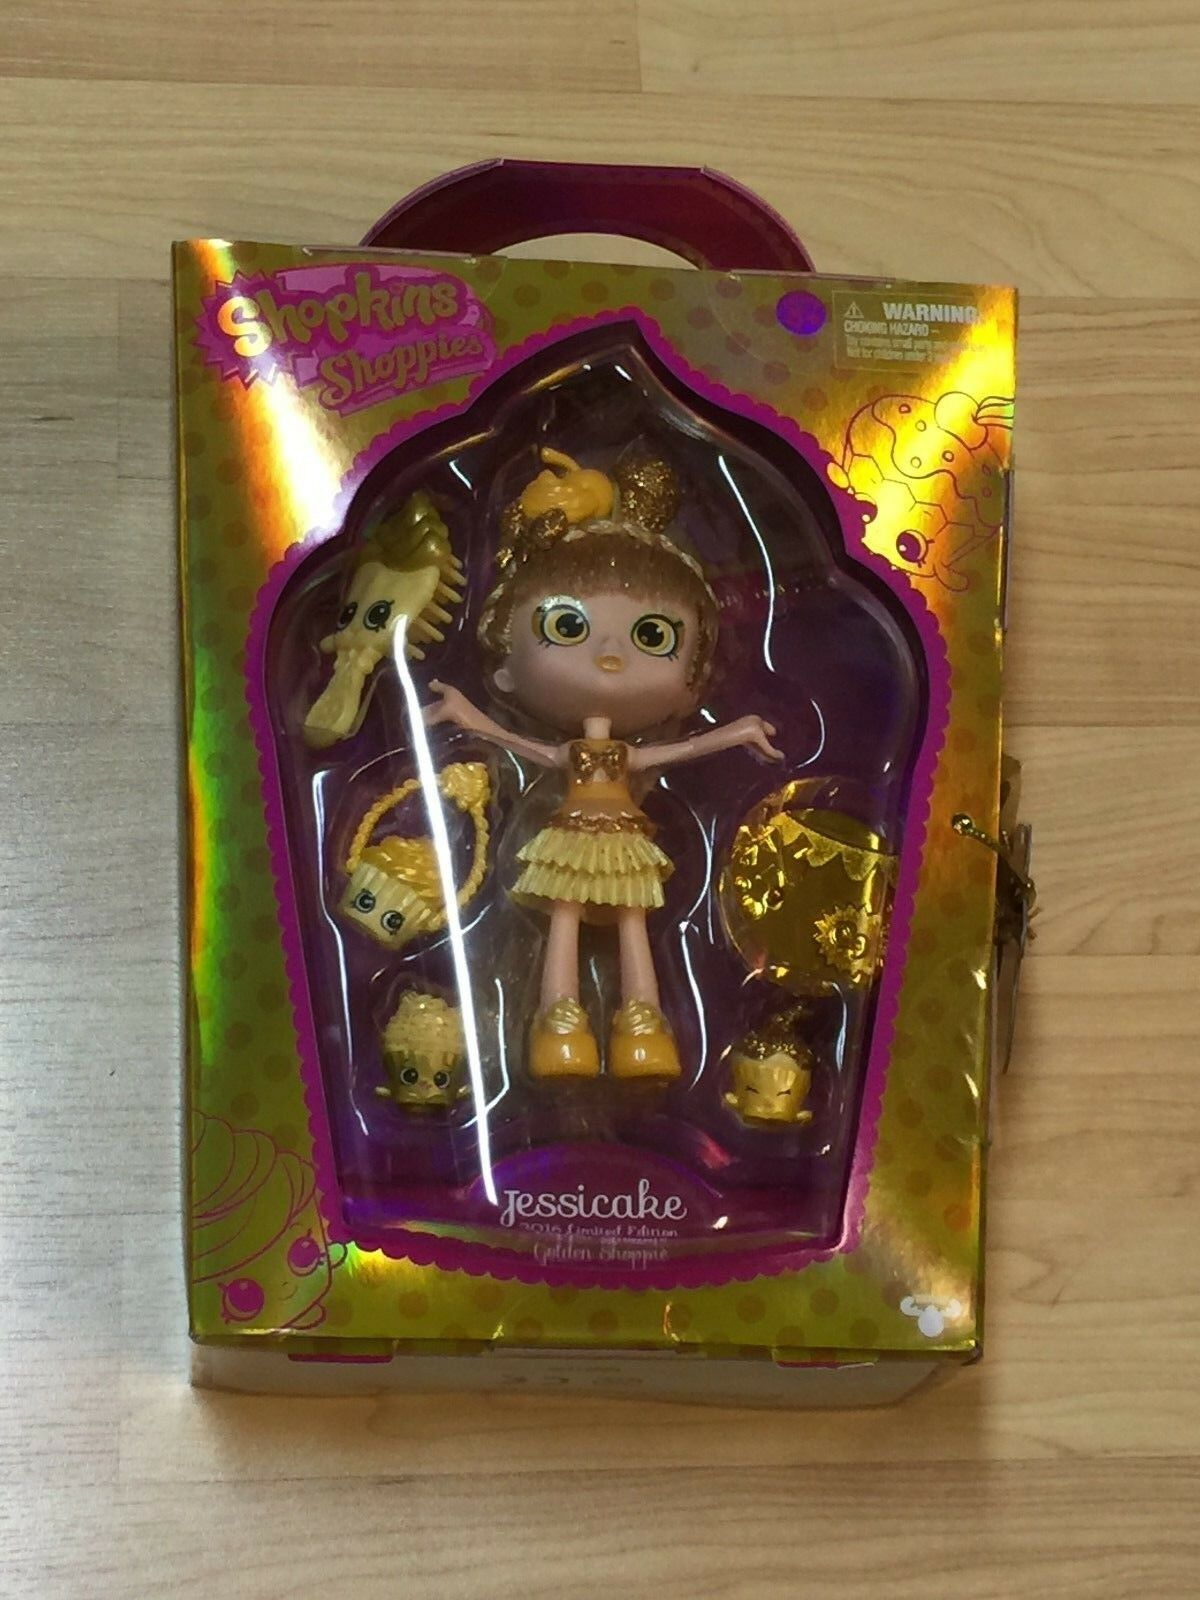 SDCC 2016 Comic Con EXCLUSIVE Shopkins Jessicake gold LE FREE PRIORITY SHIP